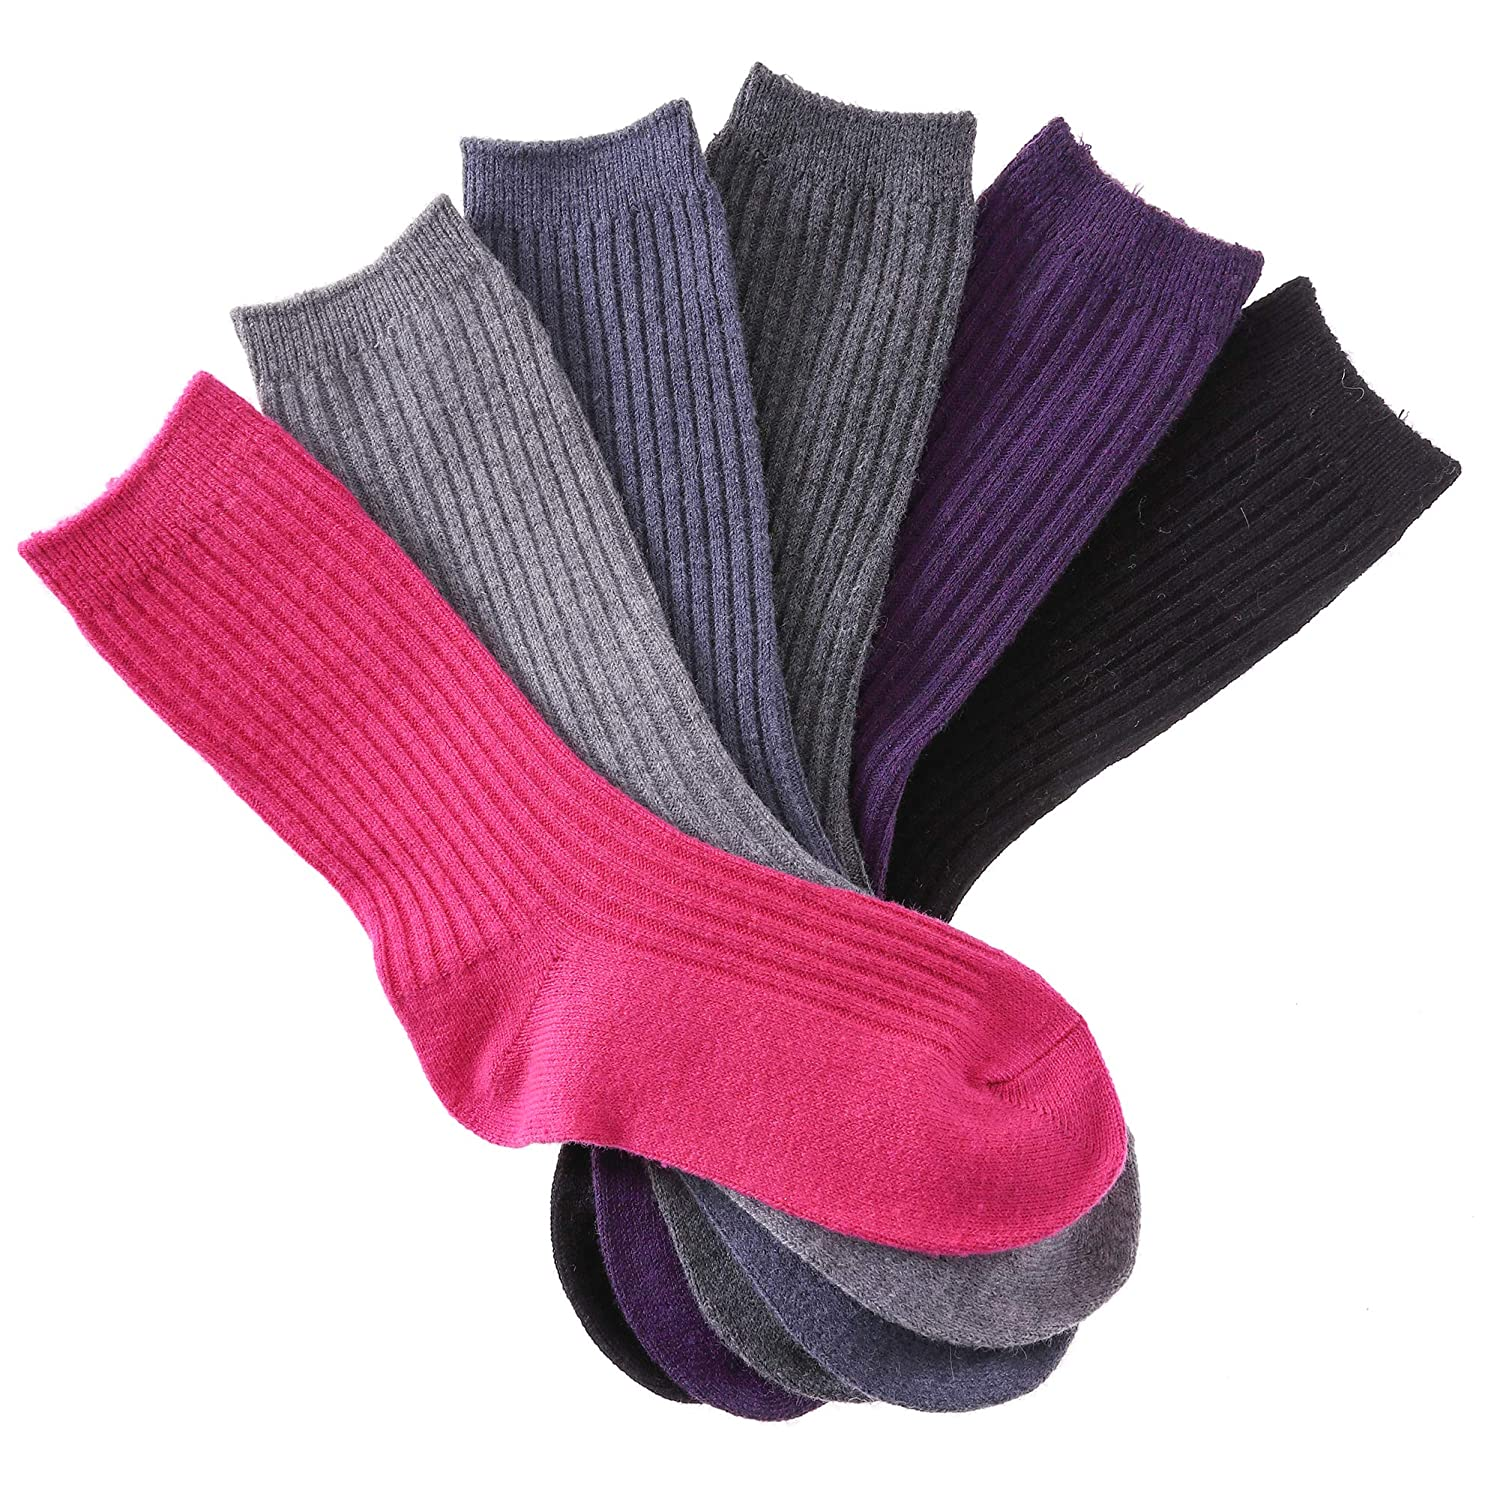 AOXION Kids Girls Boys Wool Socks Childrens Thick Soft Warm Seamless Crew Winter Socks 6 Pack